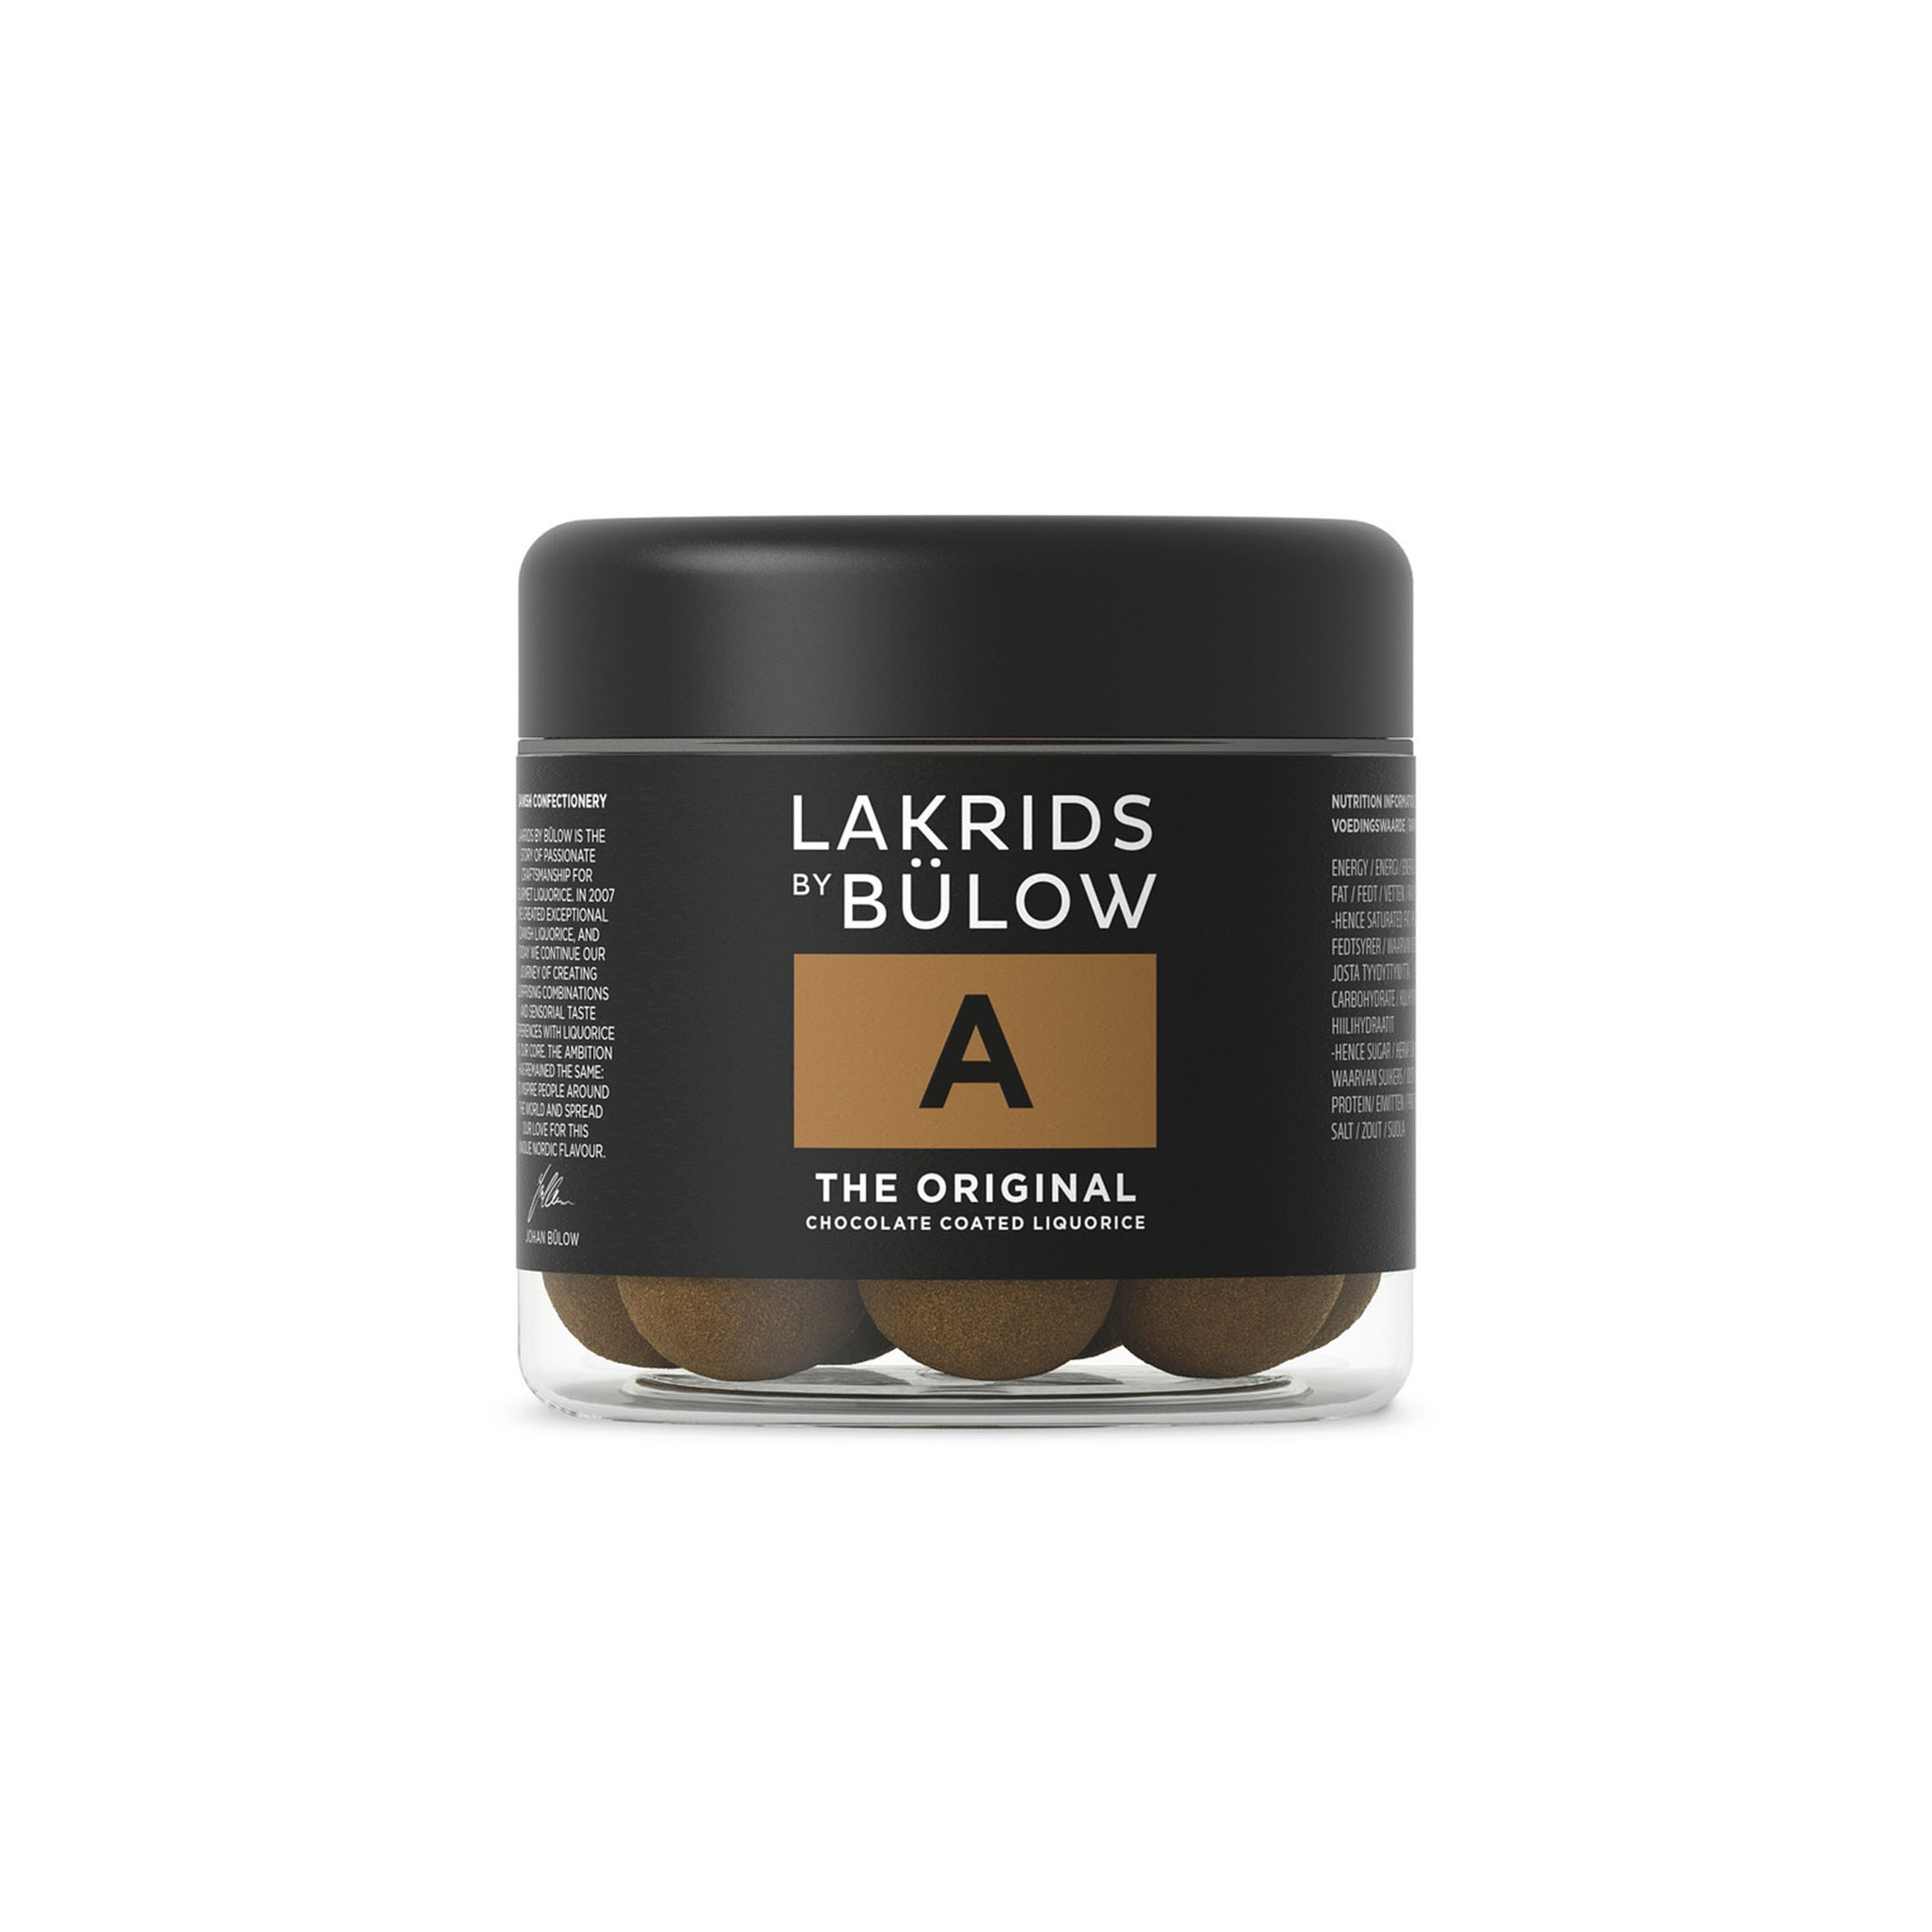 Lakrids Liquorice A Chocolate Coated Liquorice